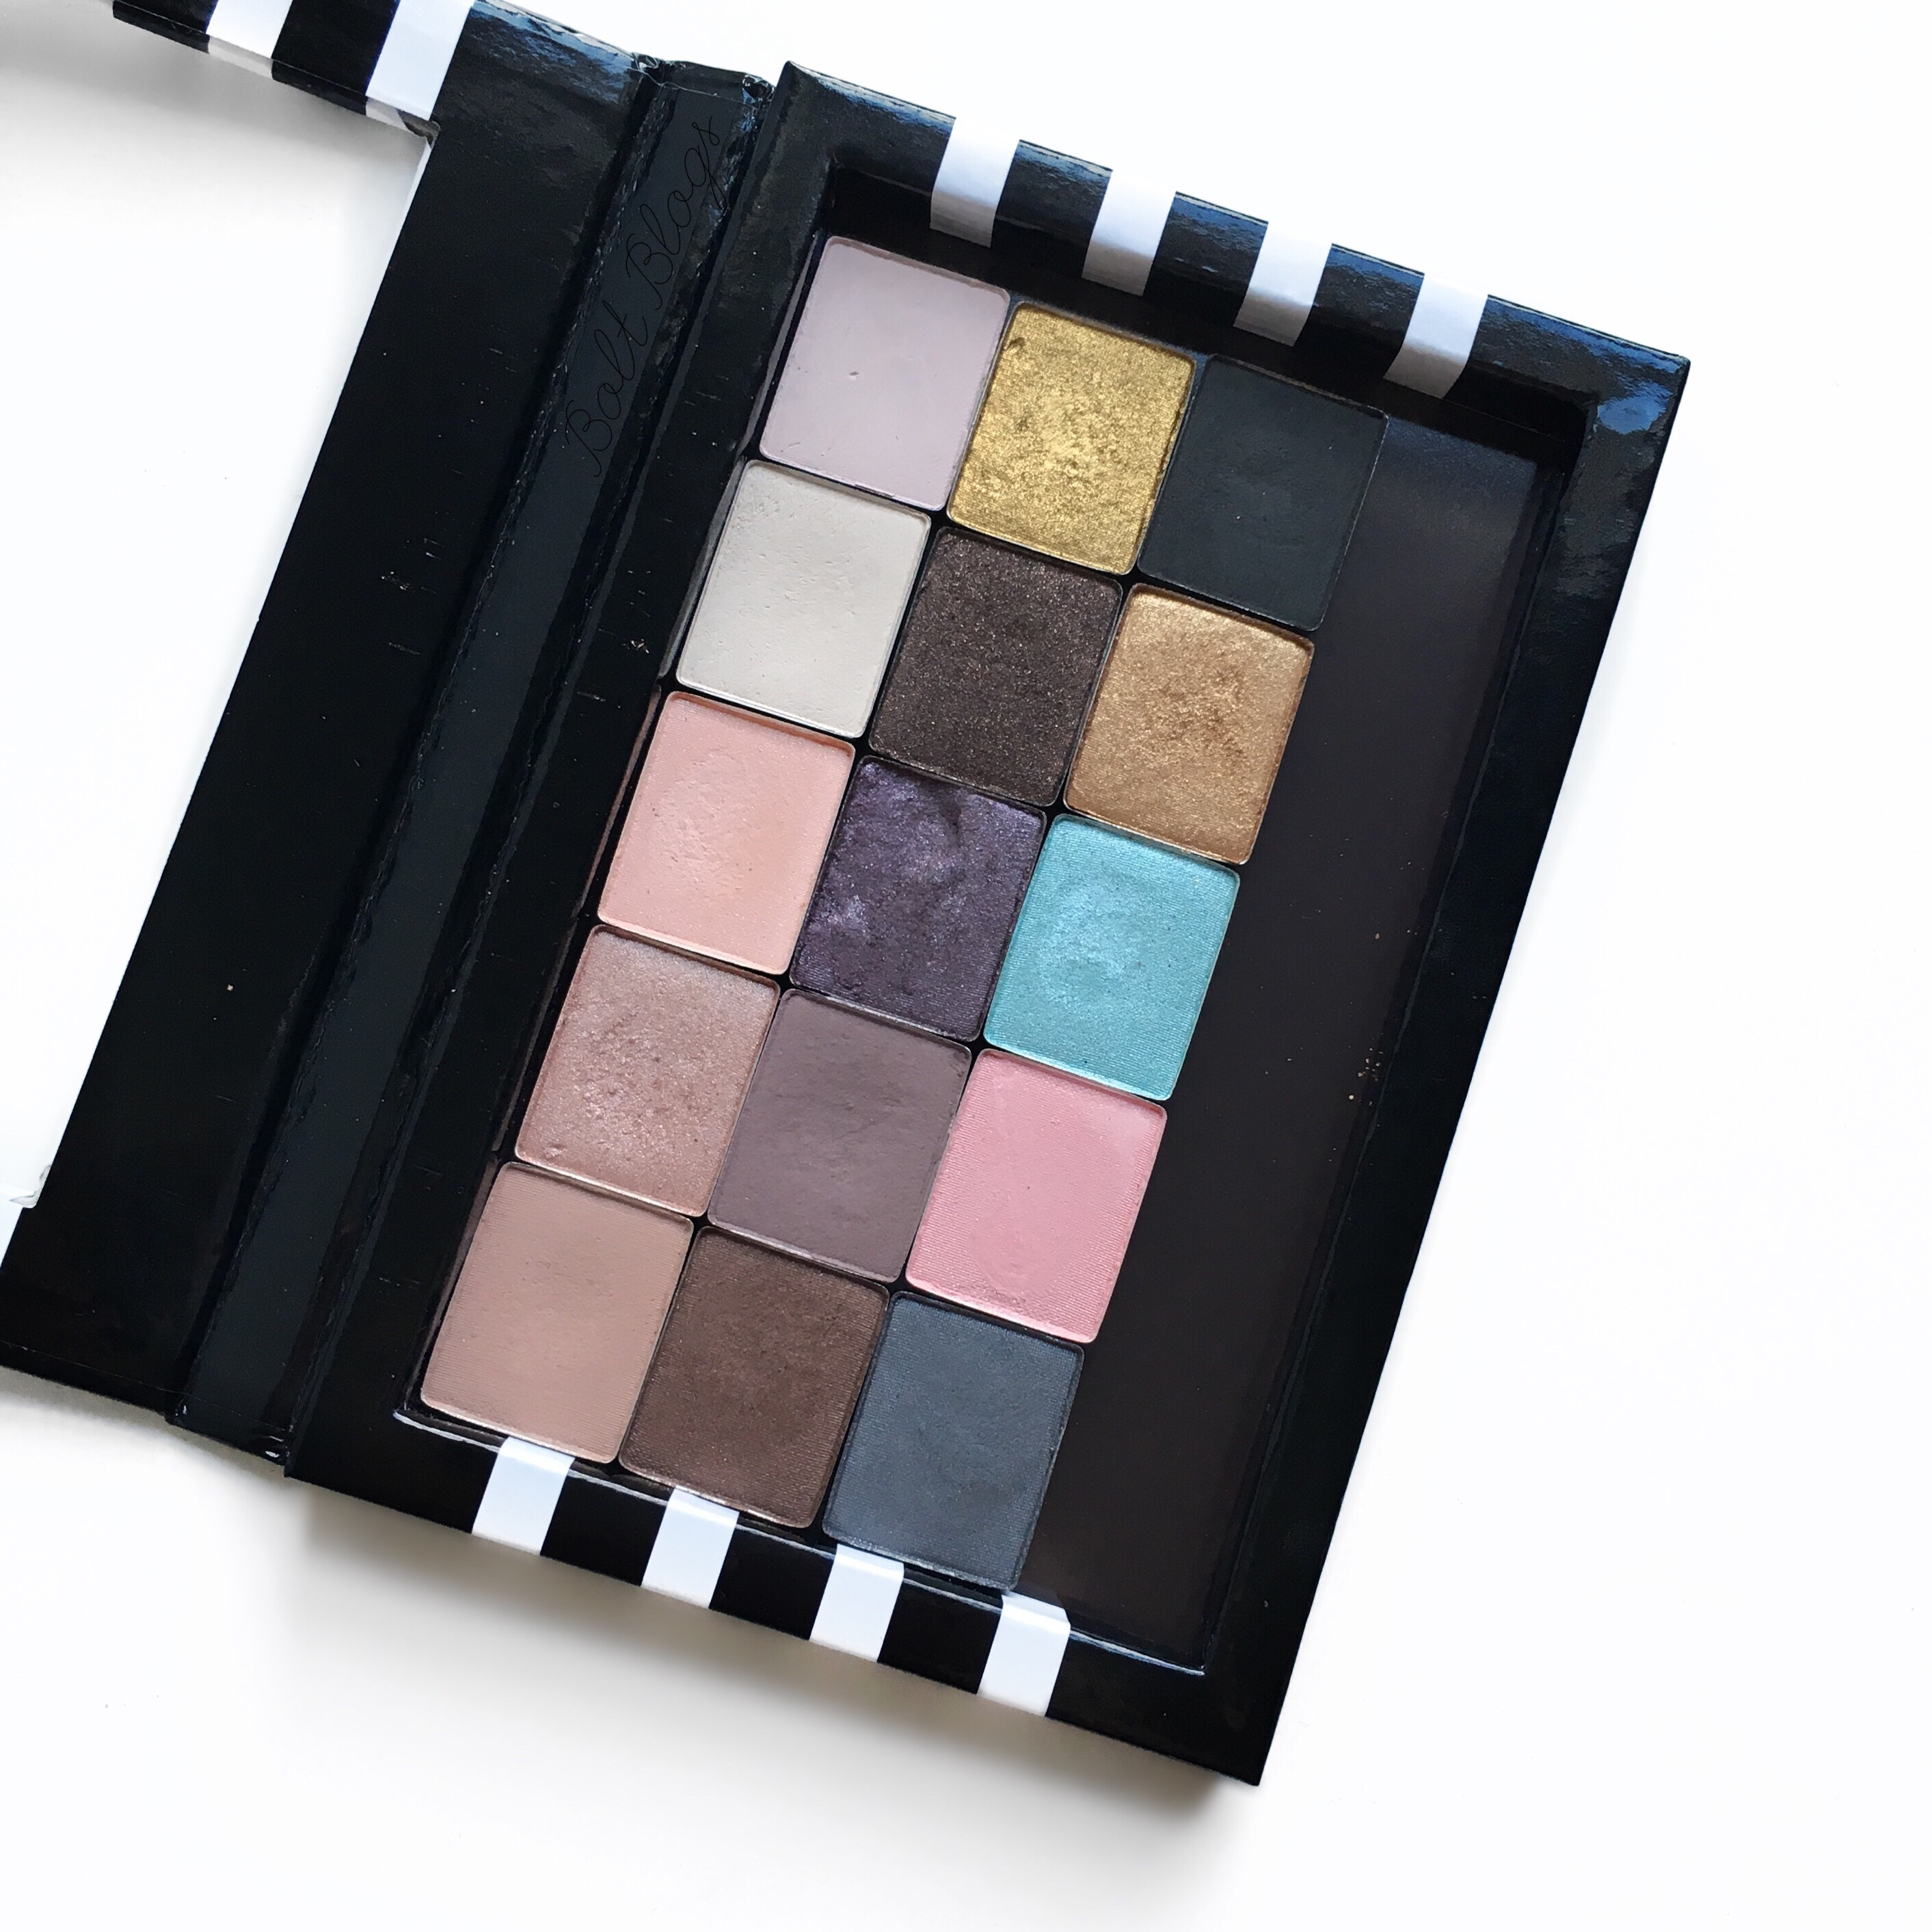 Sephora Z Palette Depotting | Bolt Blogs